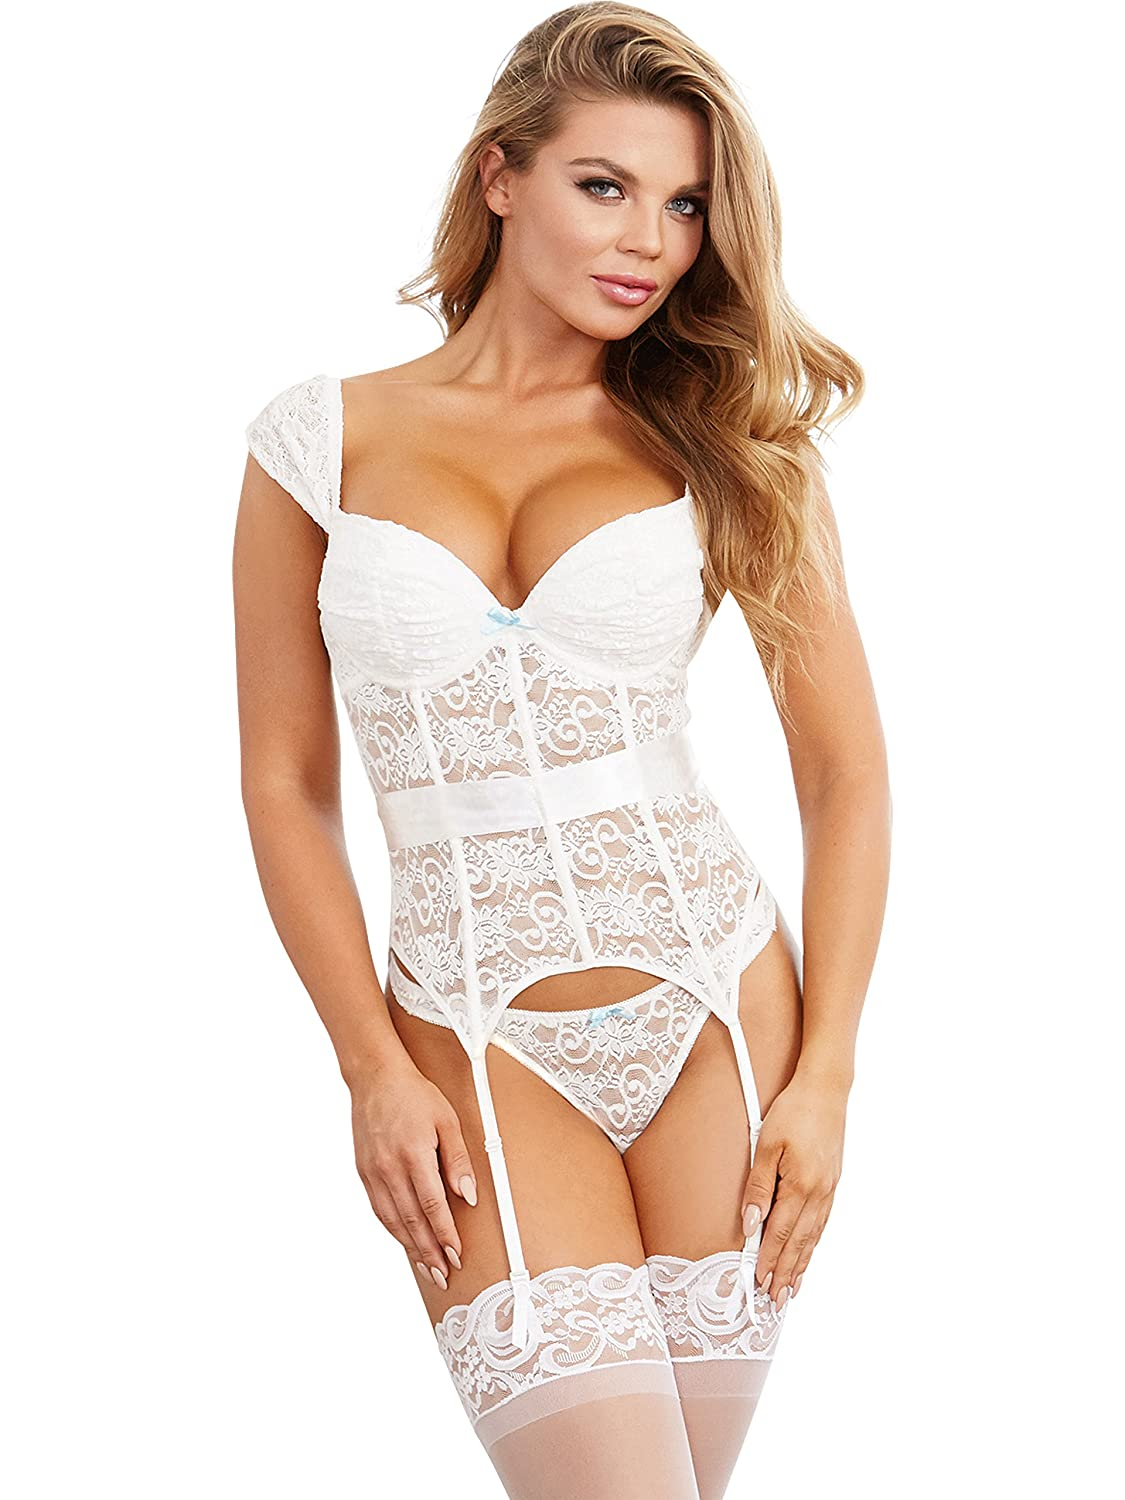 daba8eb9d0ea4 Amazon.com  Dreamgirl Women s Gartered Lace Bustier and Panty  Clothing